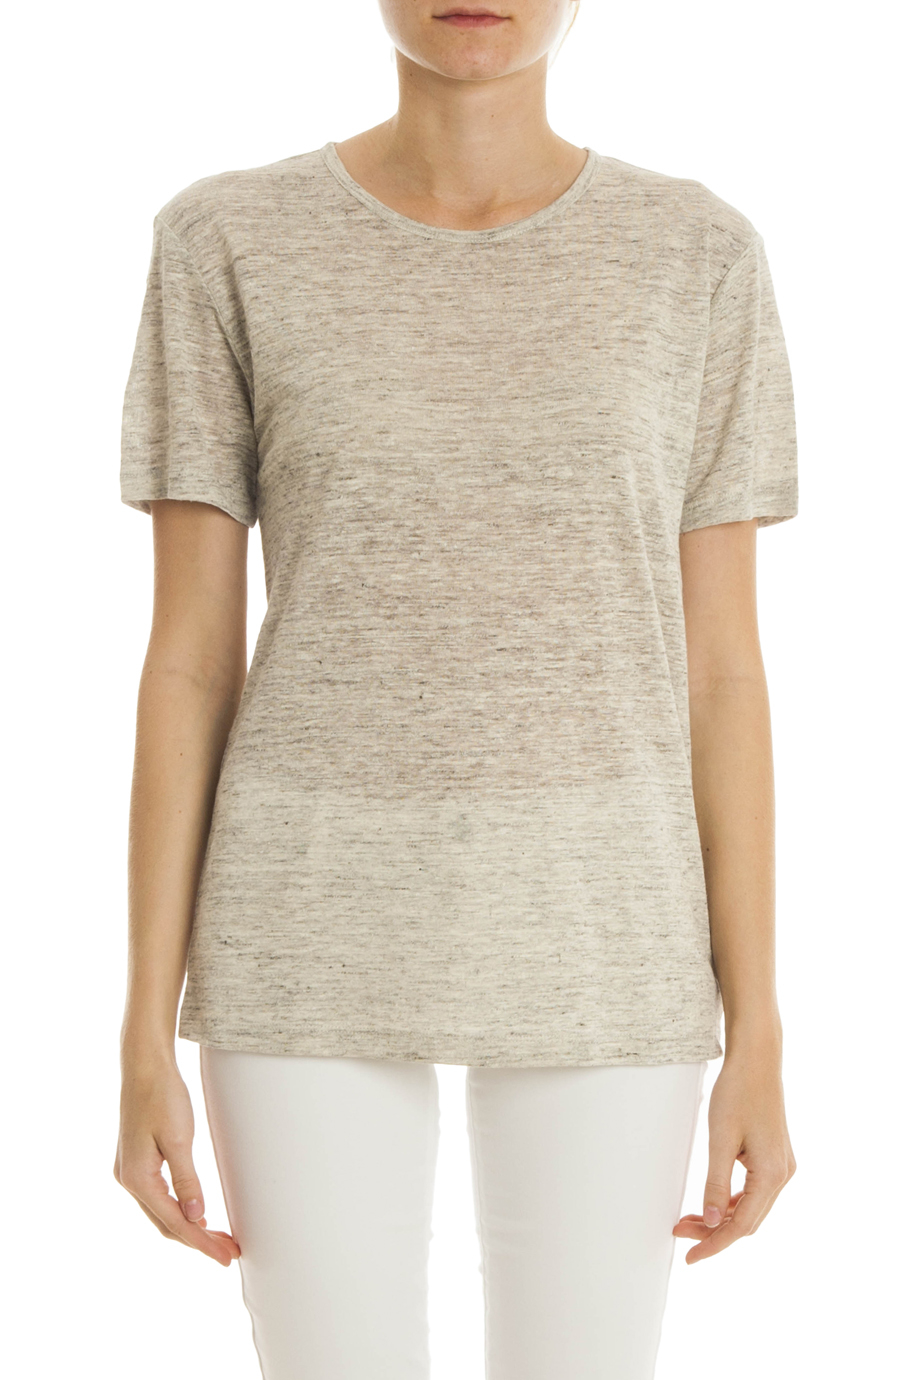 T by alexander wang heather jersey t shirt in gray lyst for T by alexander wang t shirt